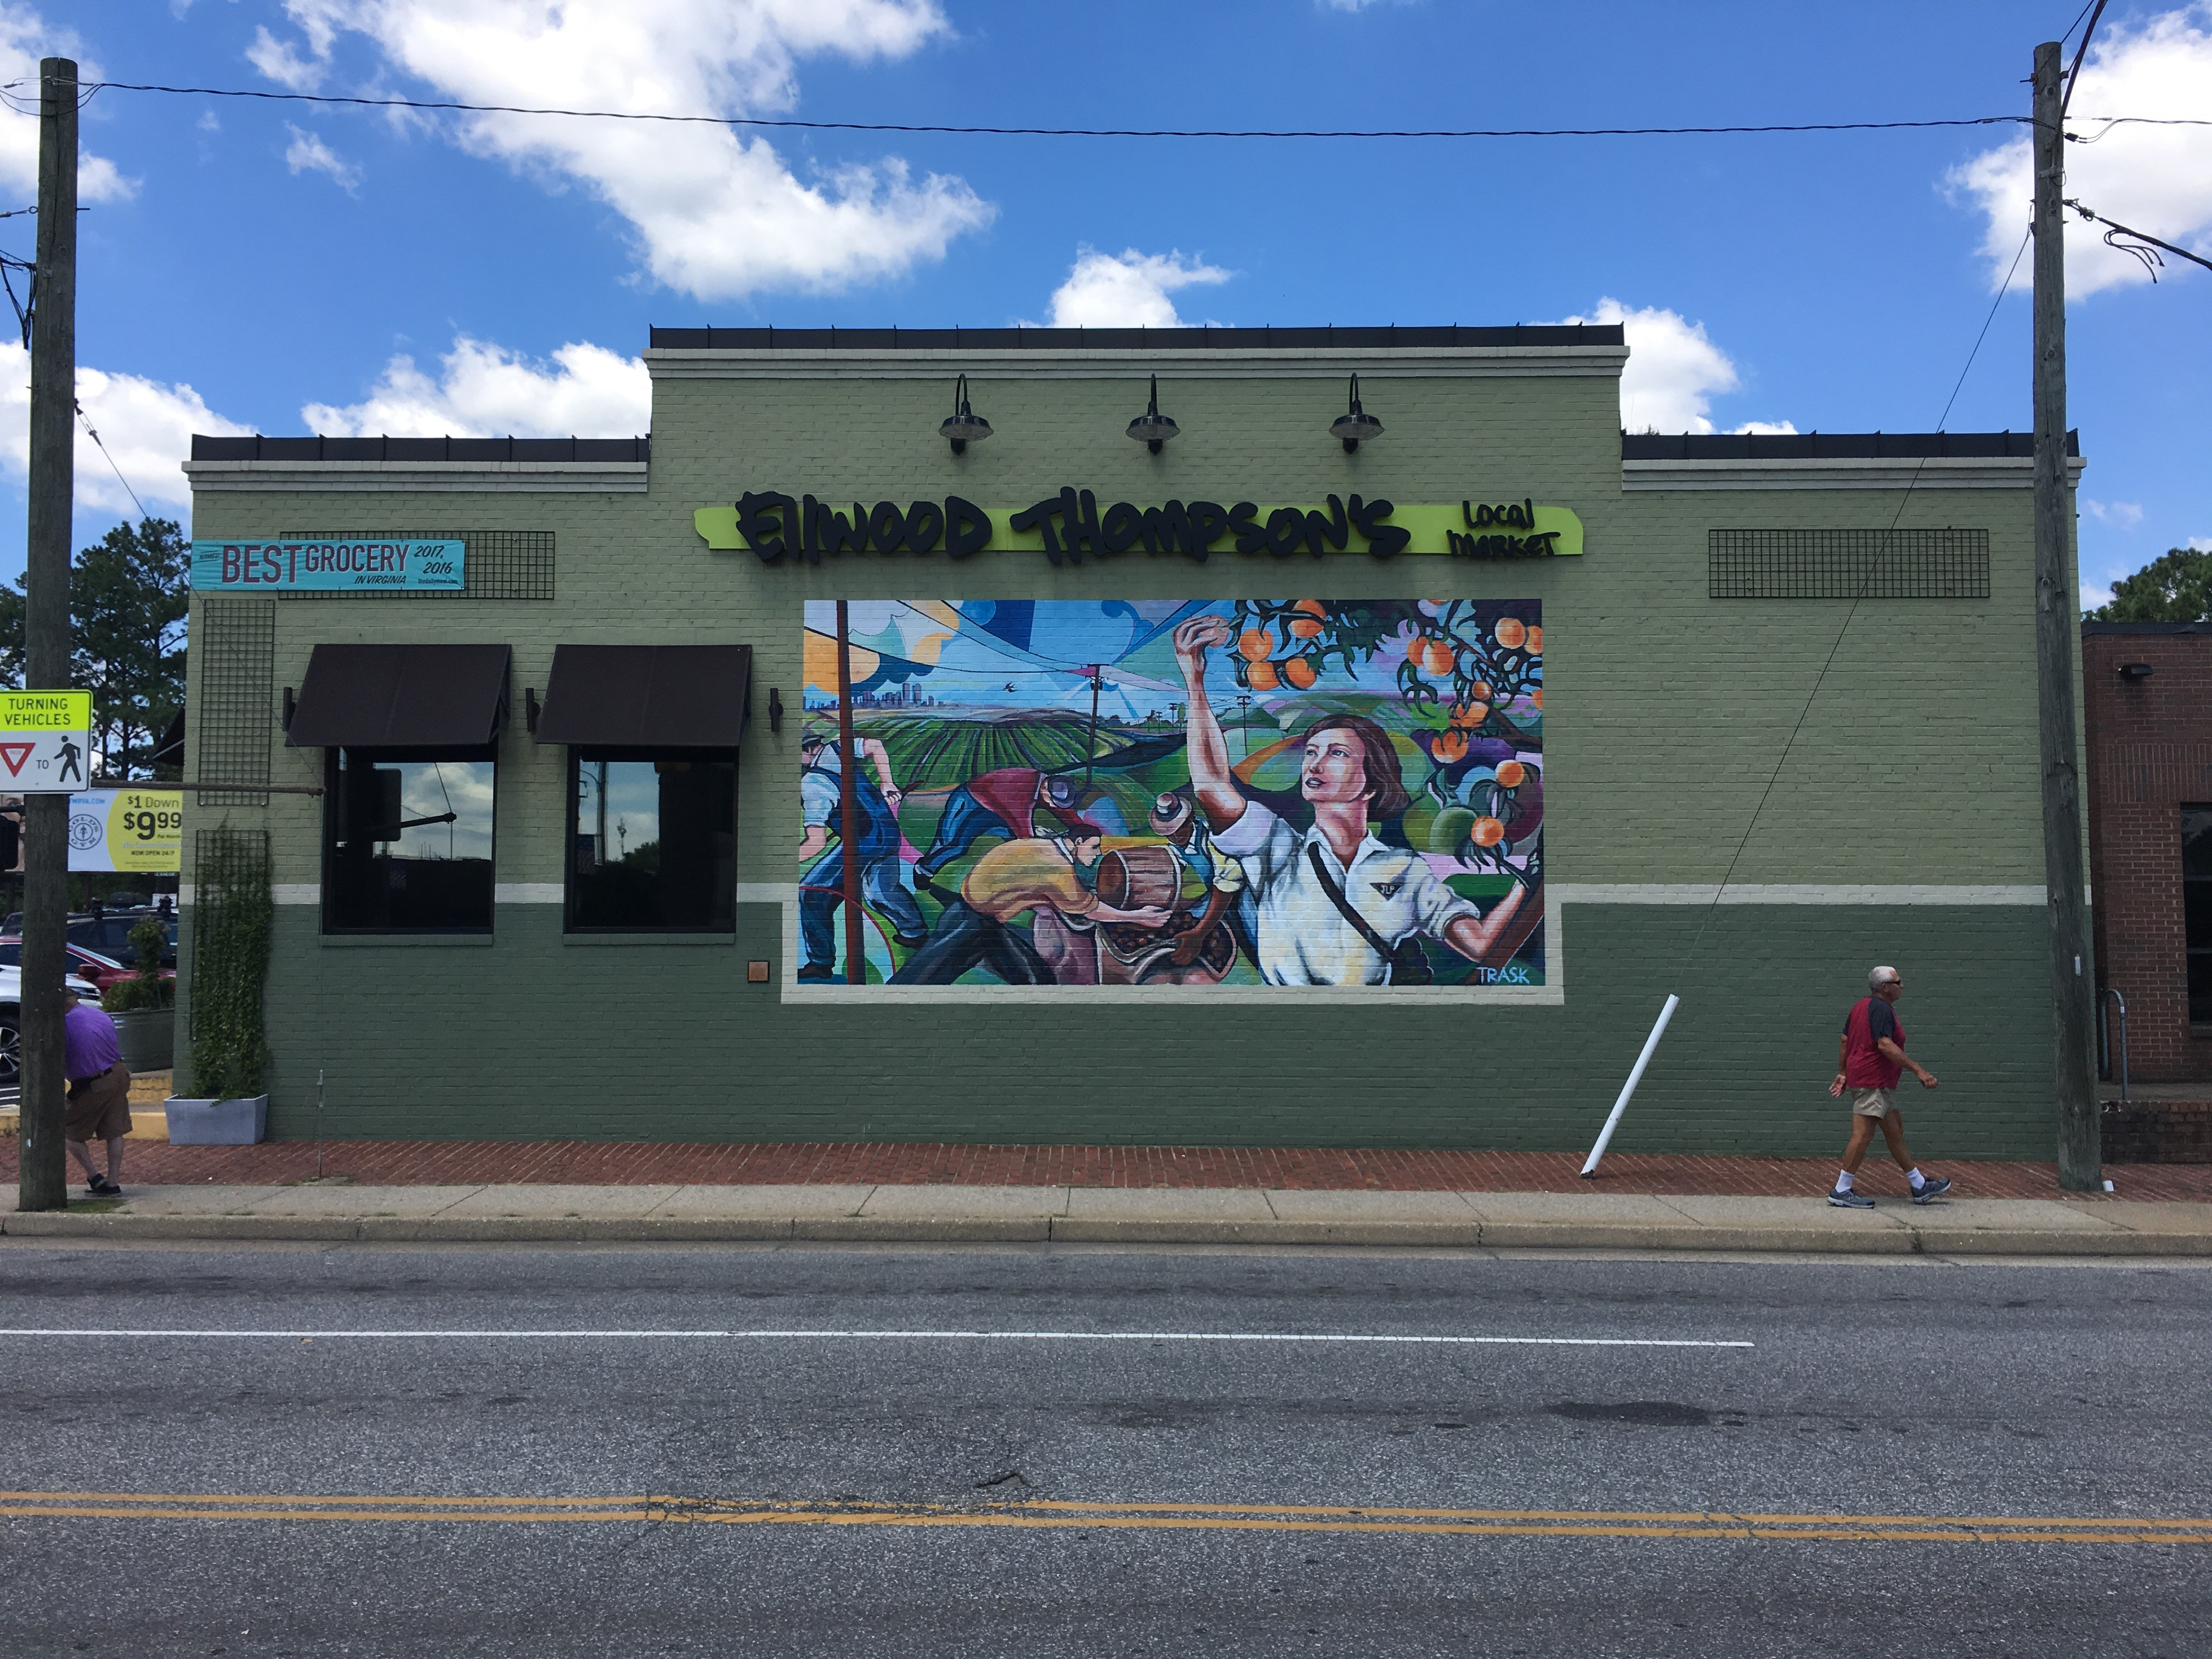 What would happen if ellwood thompsons decided to paint over that mural without trasks approval would it make a difference if trask had painted that